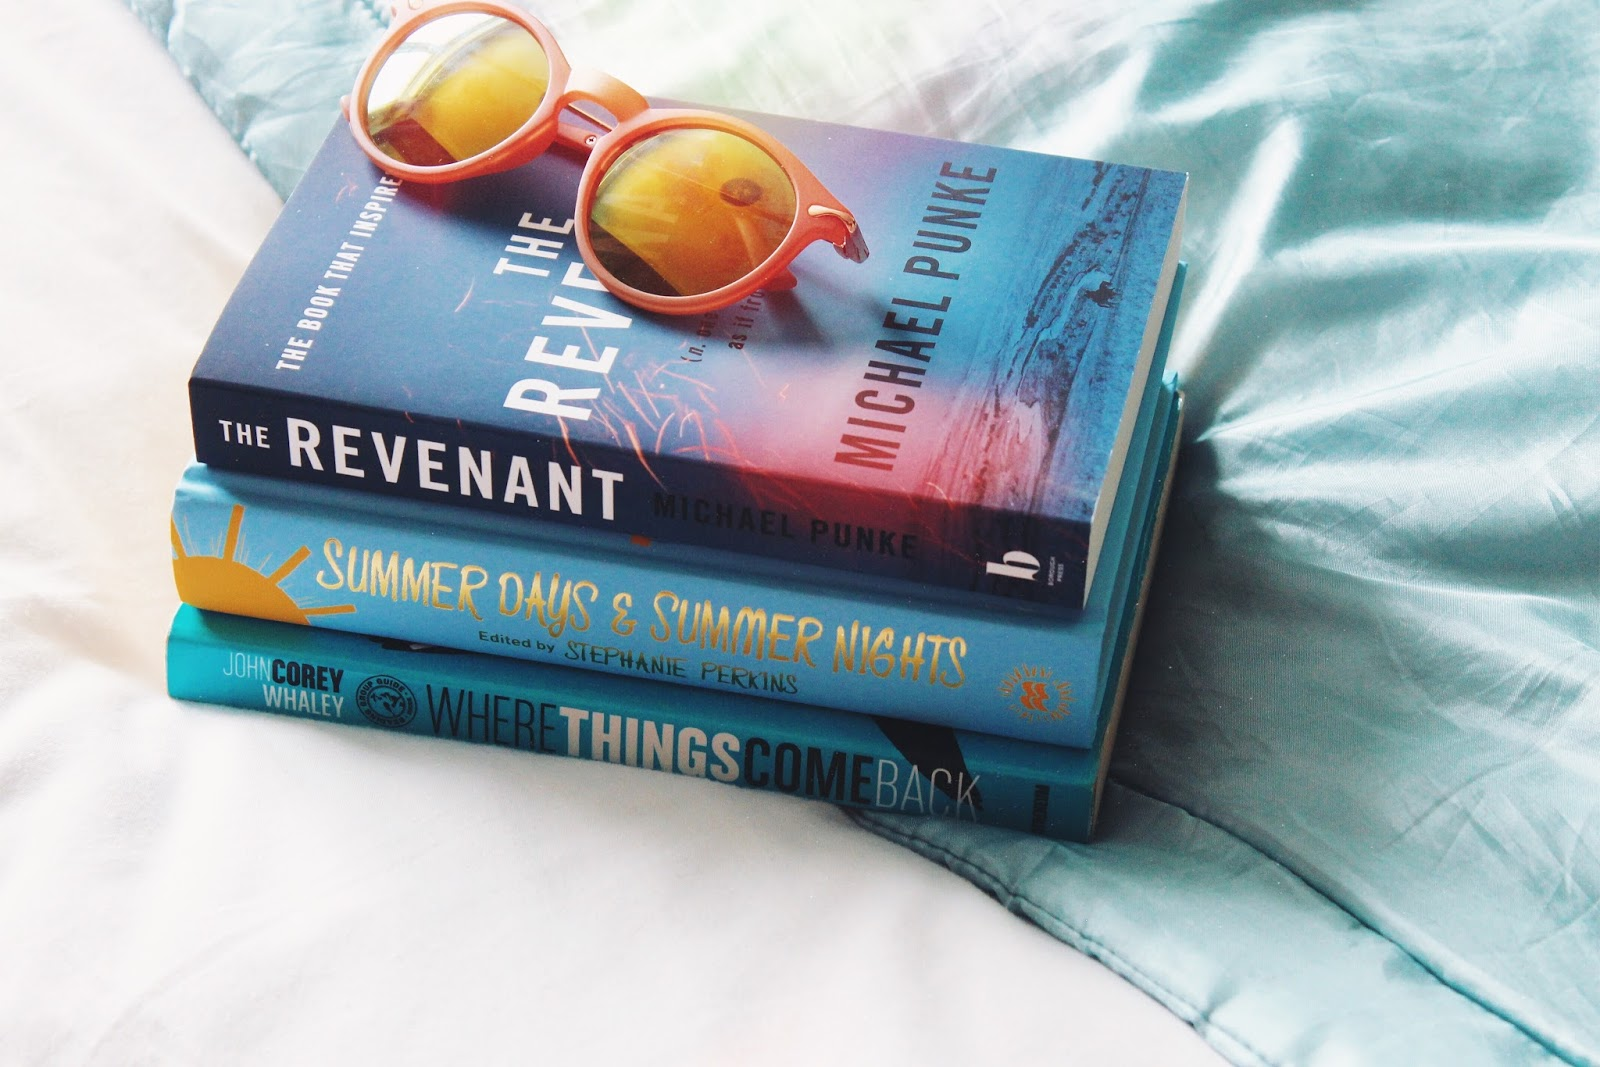 Summer book picks and sunglasses